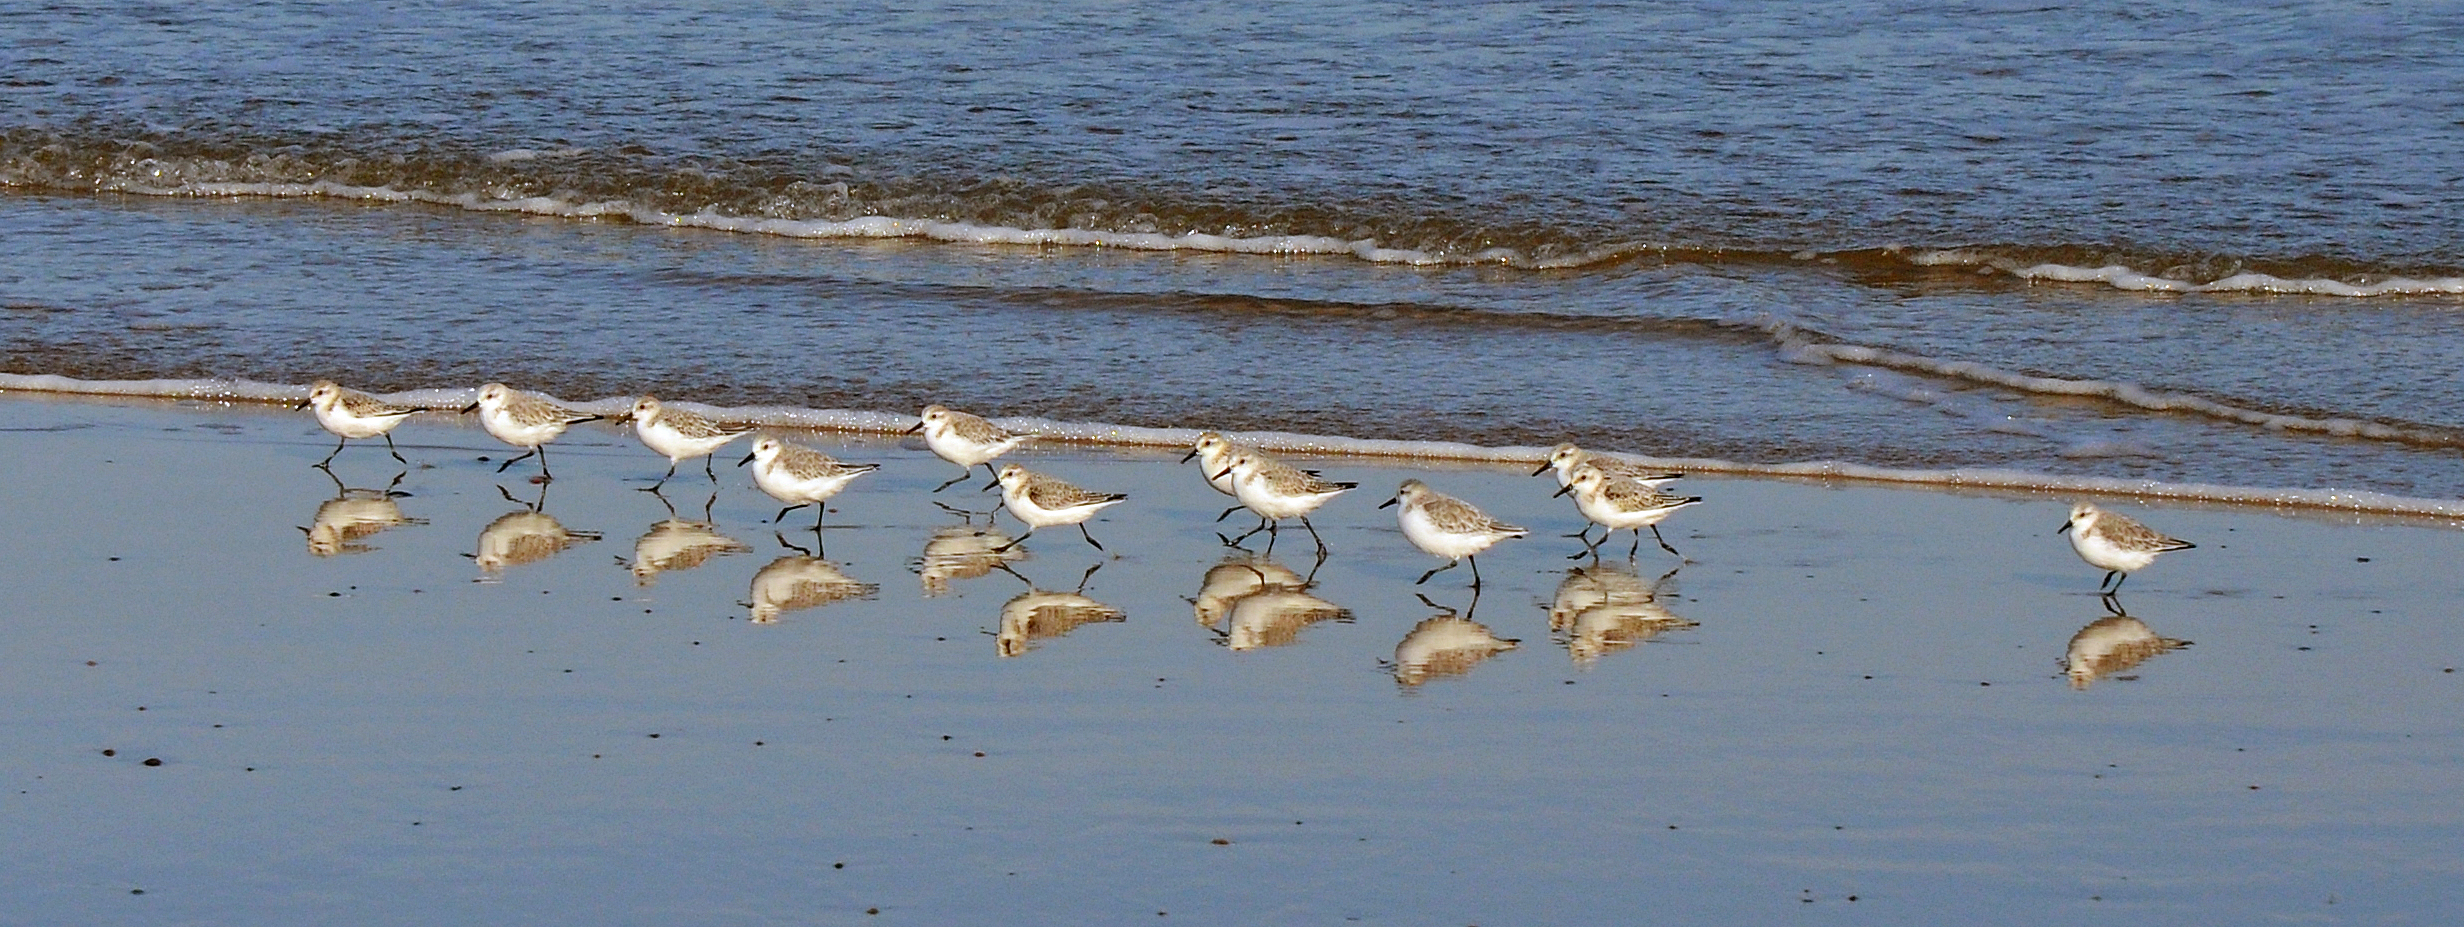 Advanced Projected Images - First - Sanderling Reflections by Carrie Calvert (November2014)